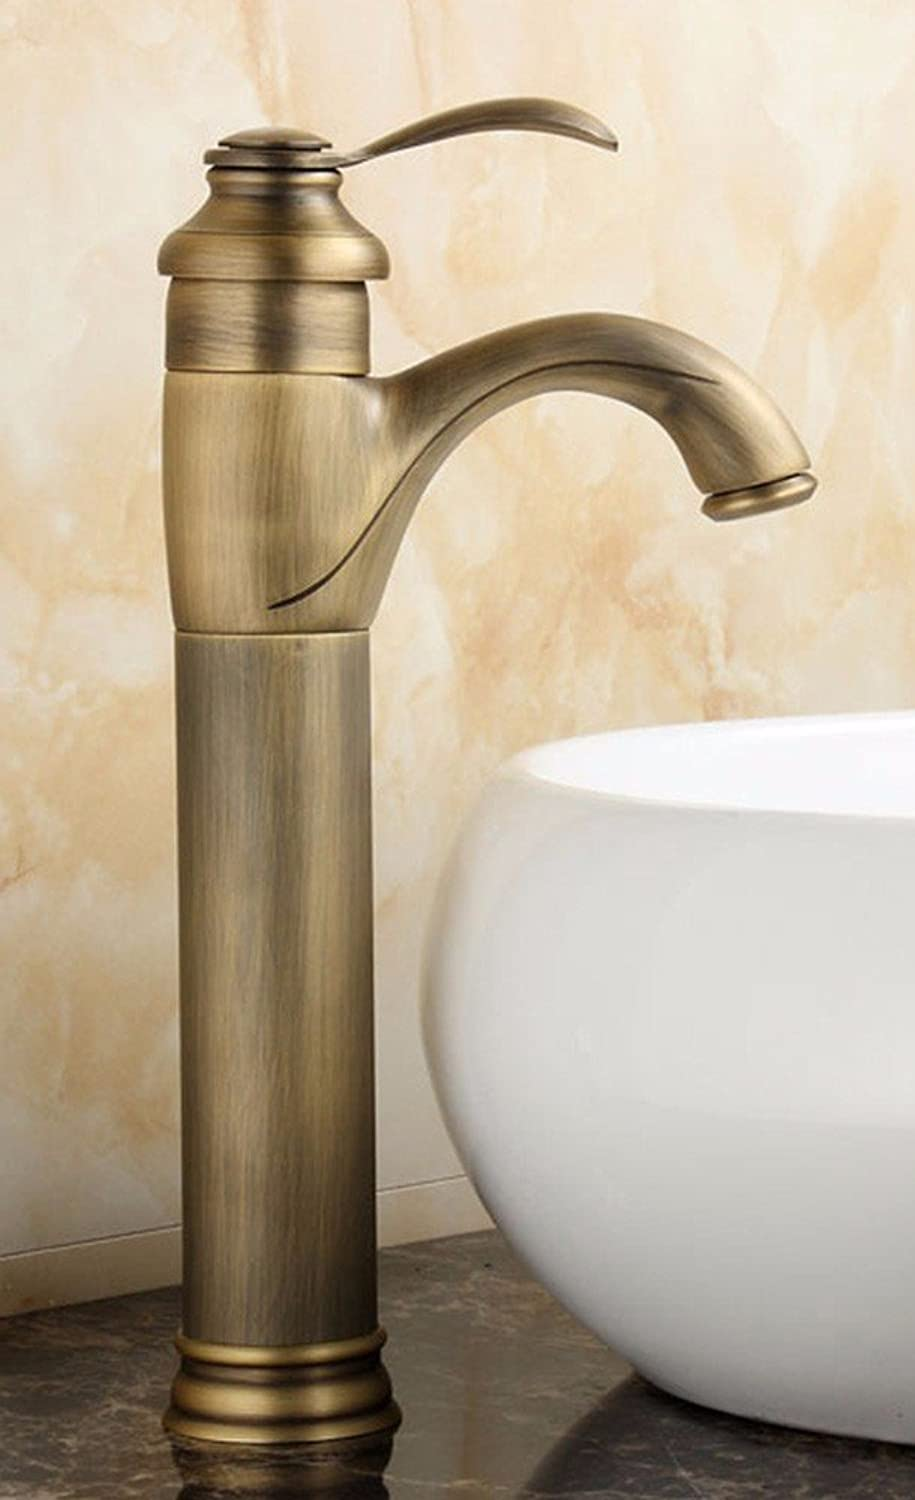 Hlluya Professional Sink Mixer Tap Kitchen Faucet Copper basin, Single Hole, hot and cold water faucets, 9